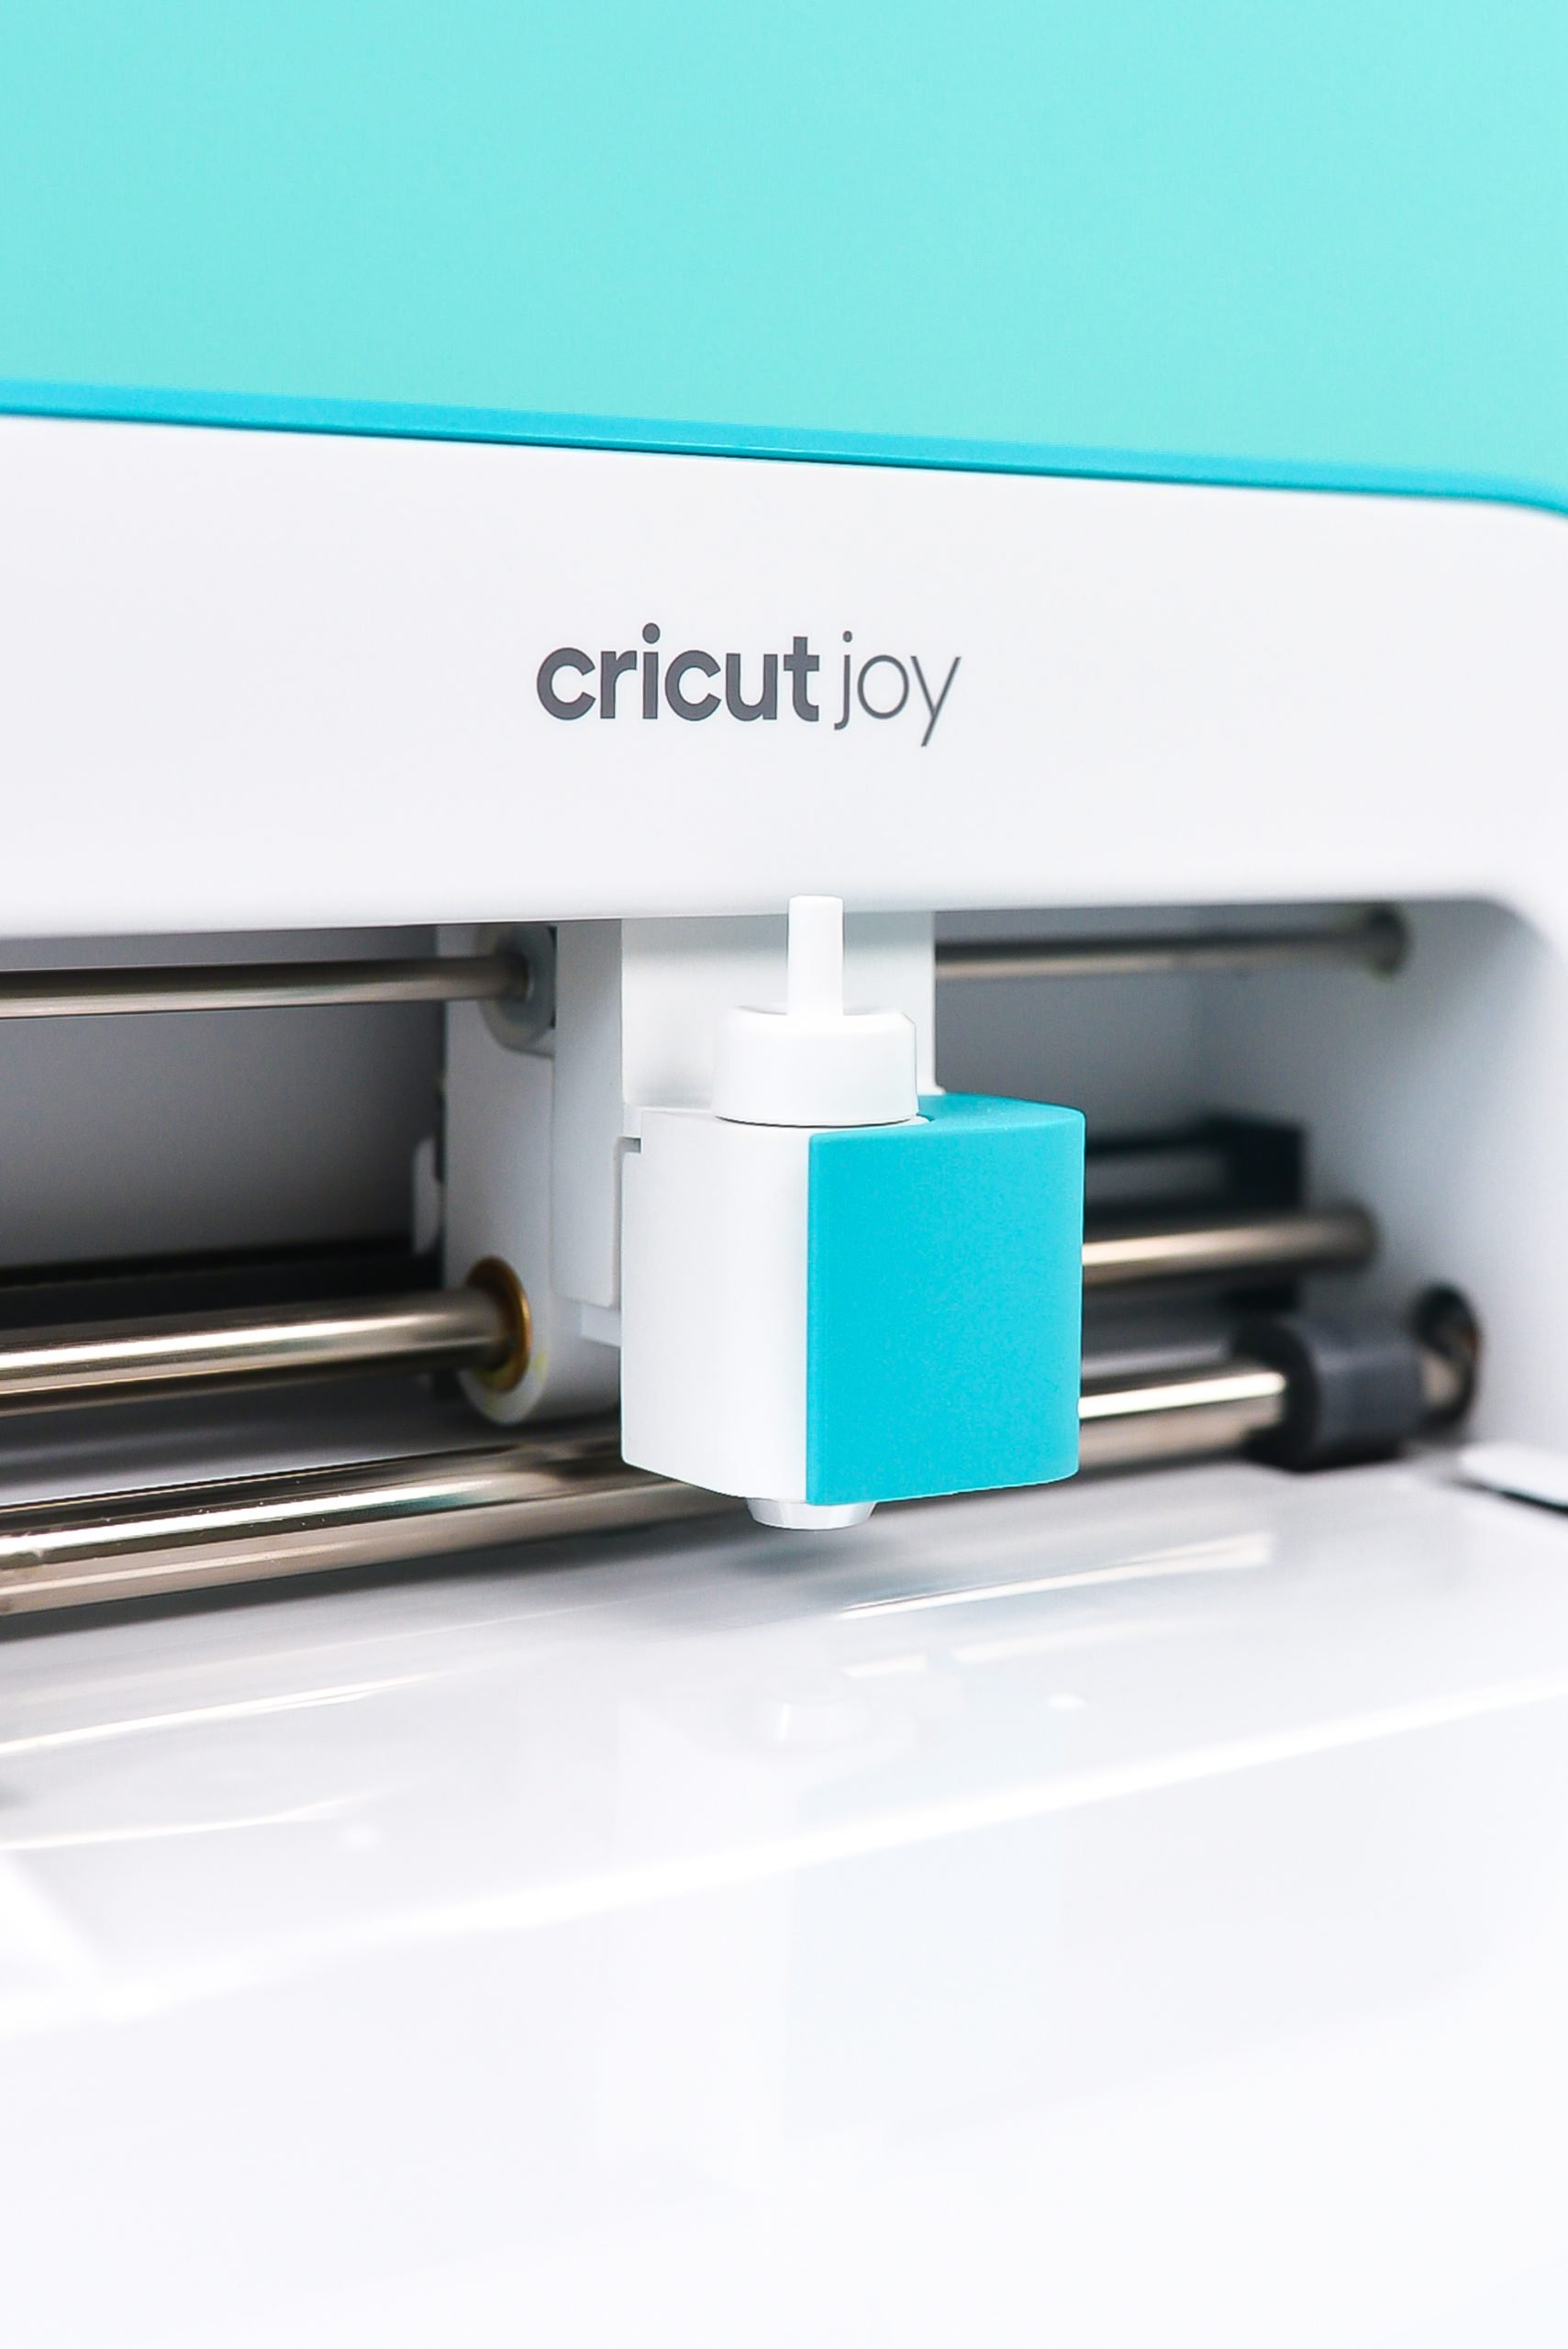 Get your hands on Cricut Joy, Cricut's newest and tiniest electronic cutting machine. Here's where to buy Cricut Joy, your new DIY best friend!